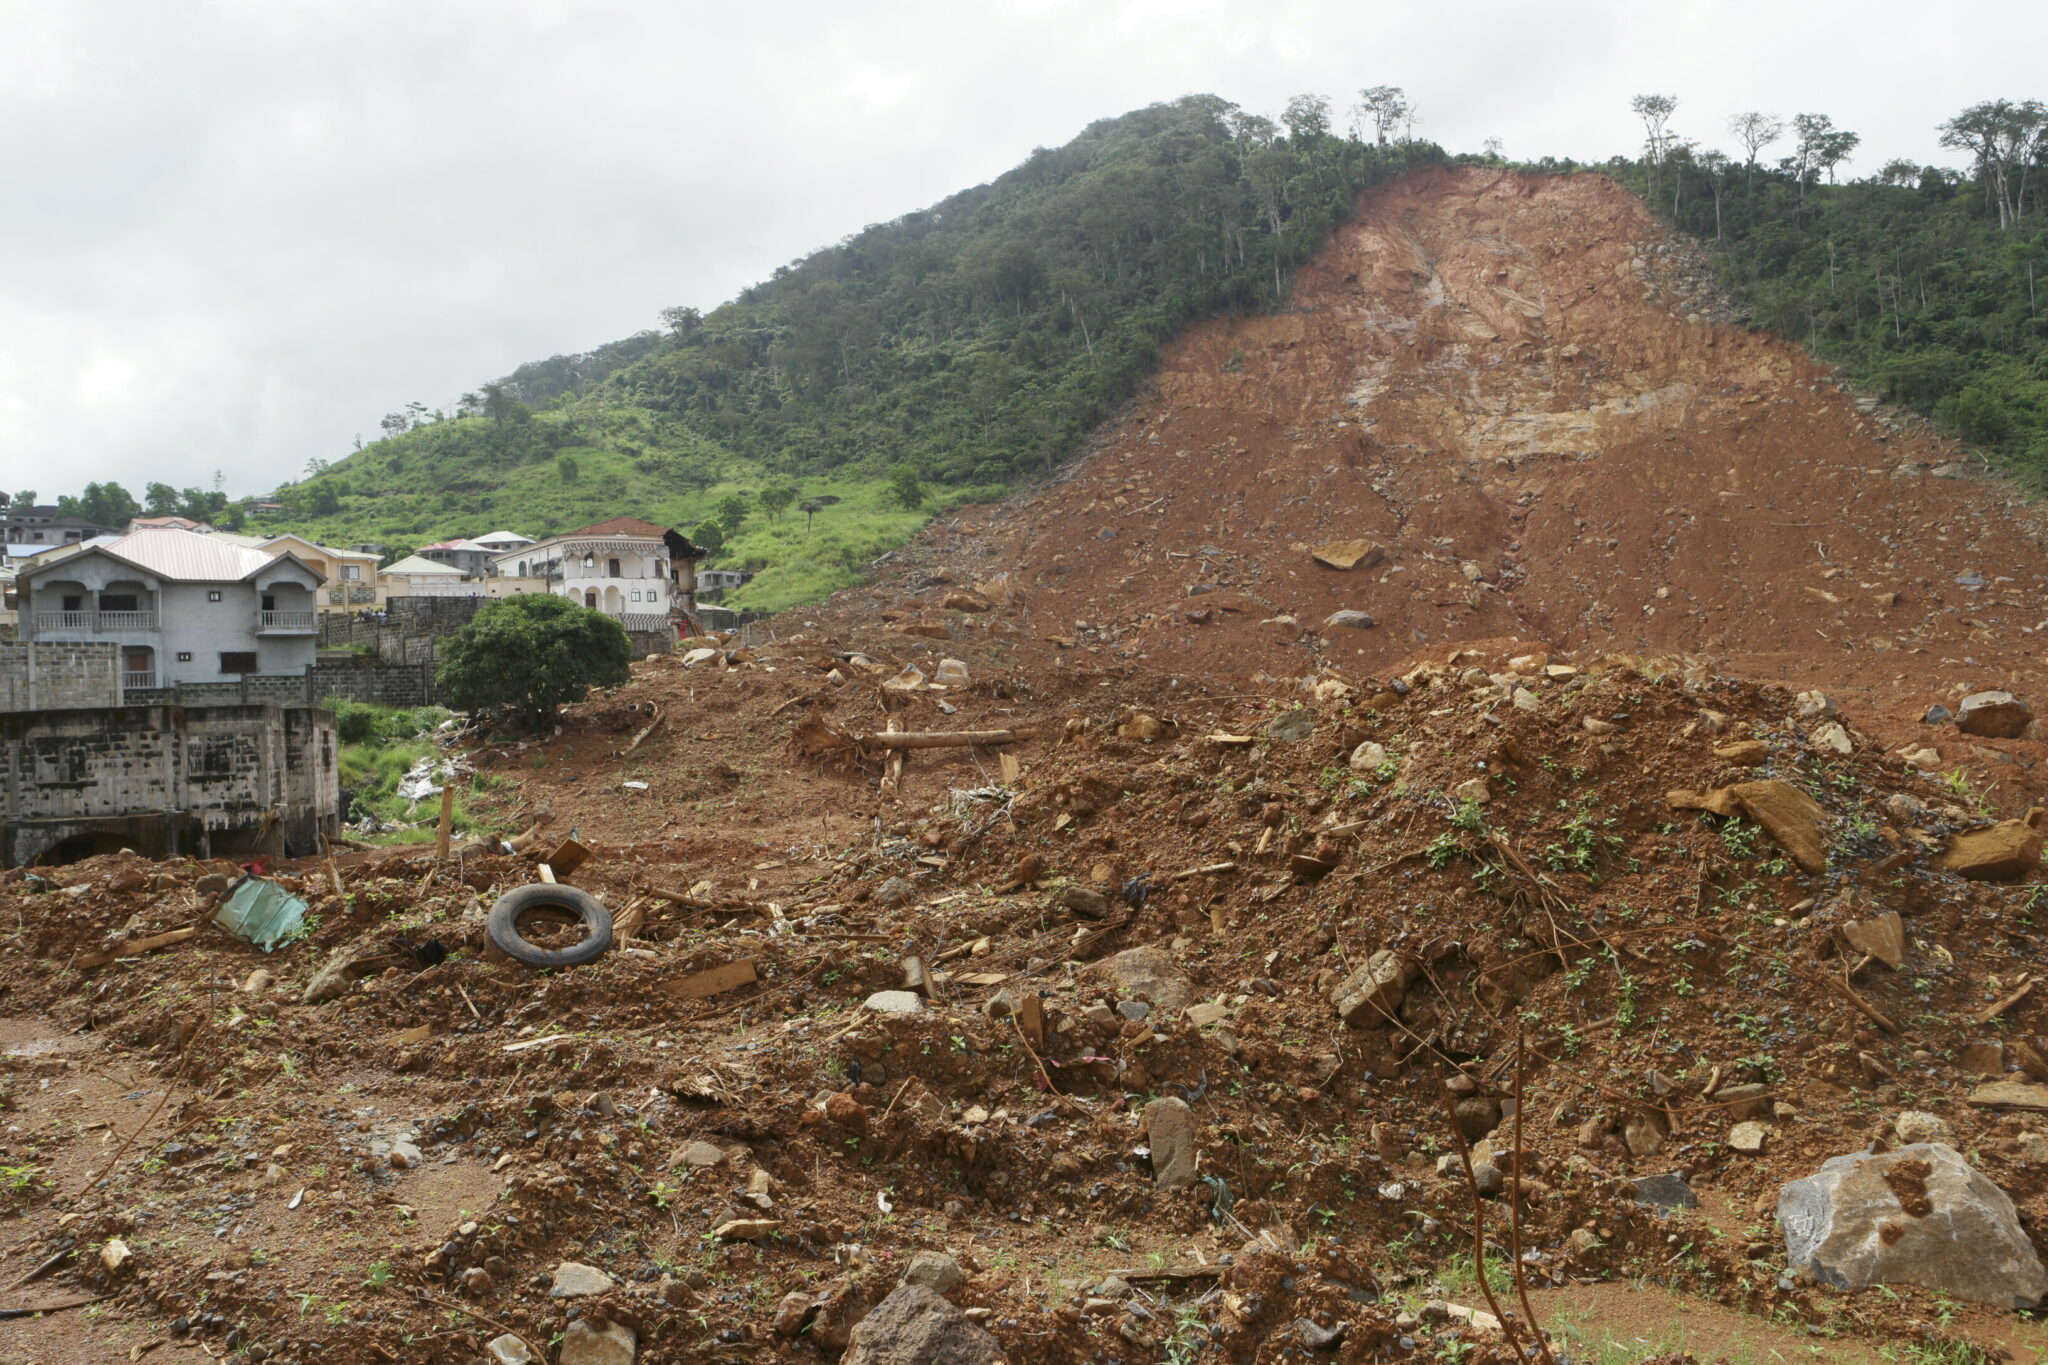 The site of mudslides in Sierra Leone